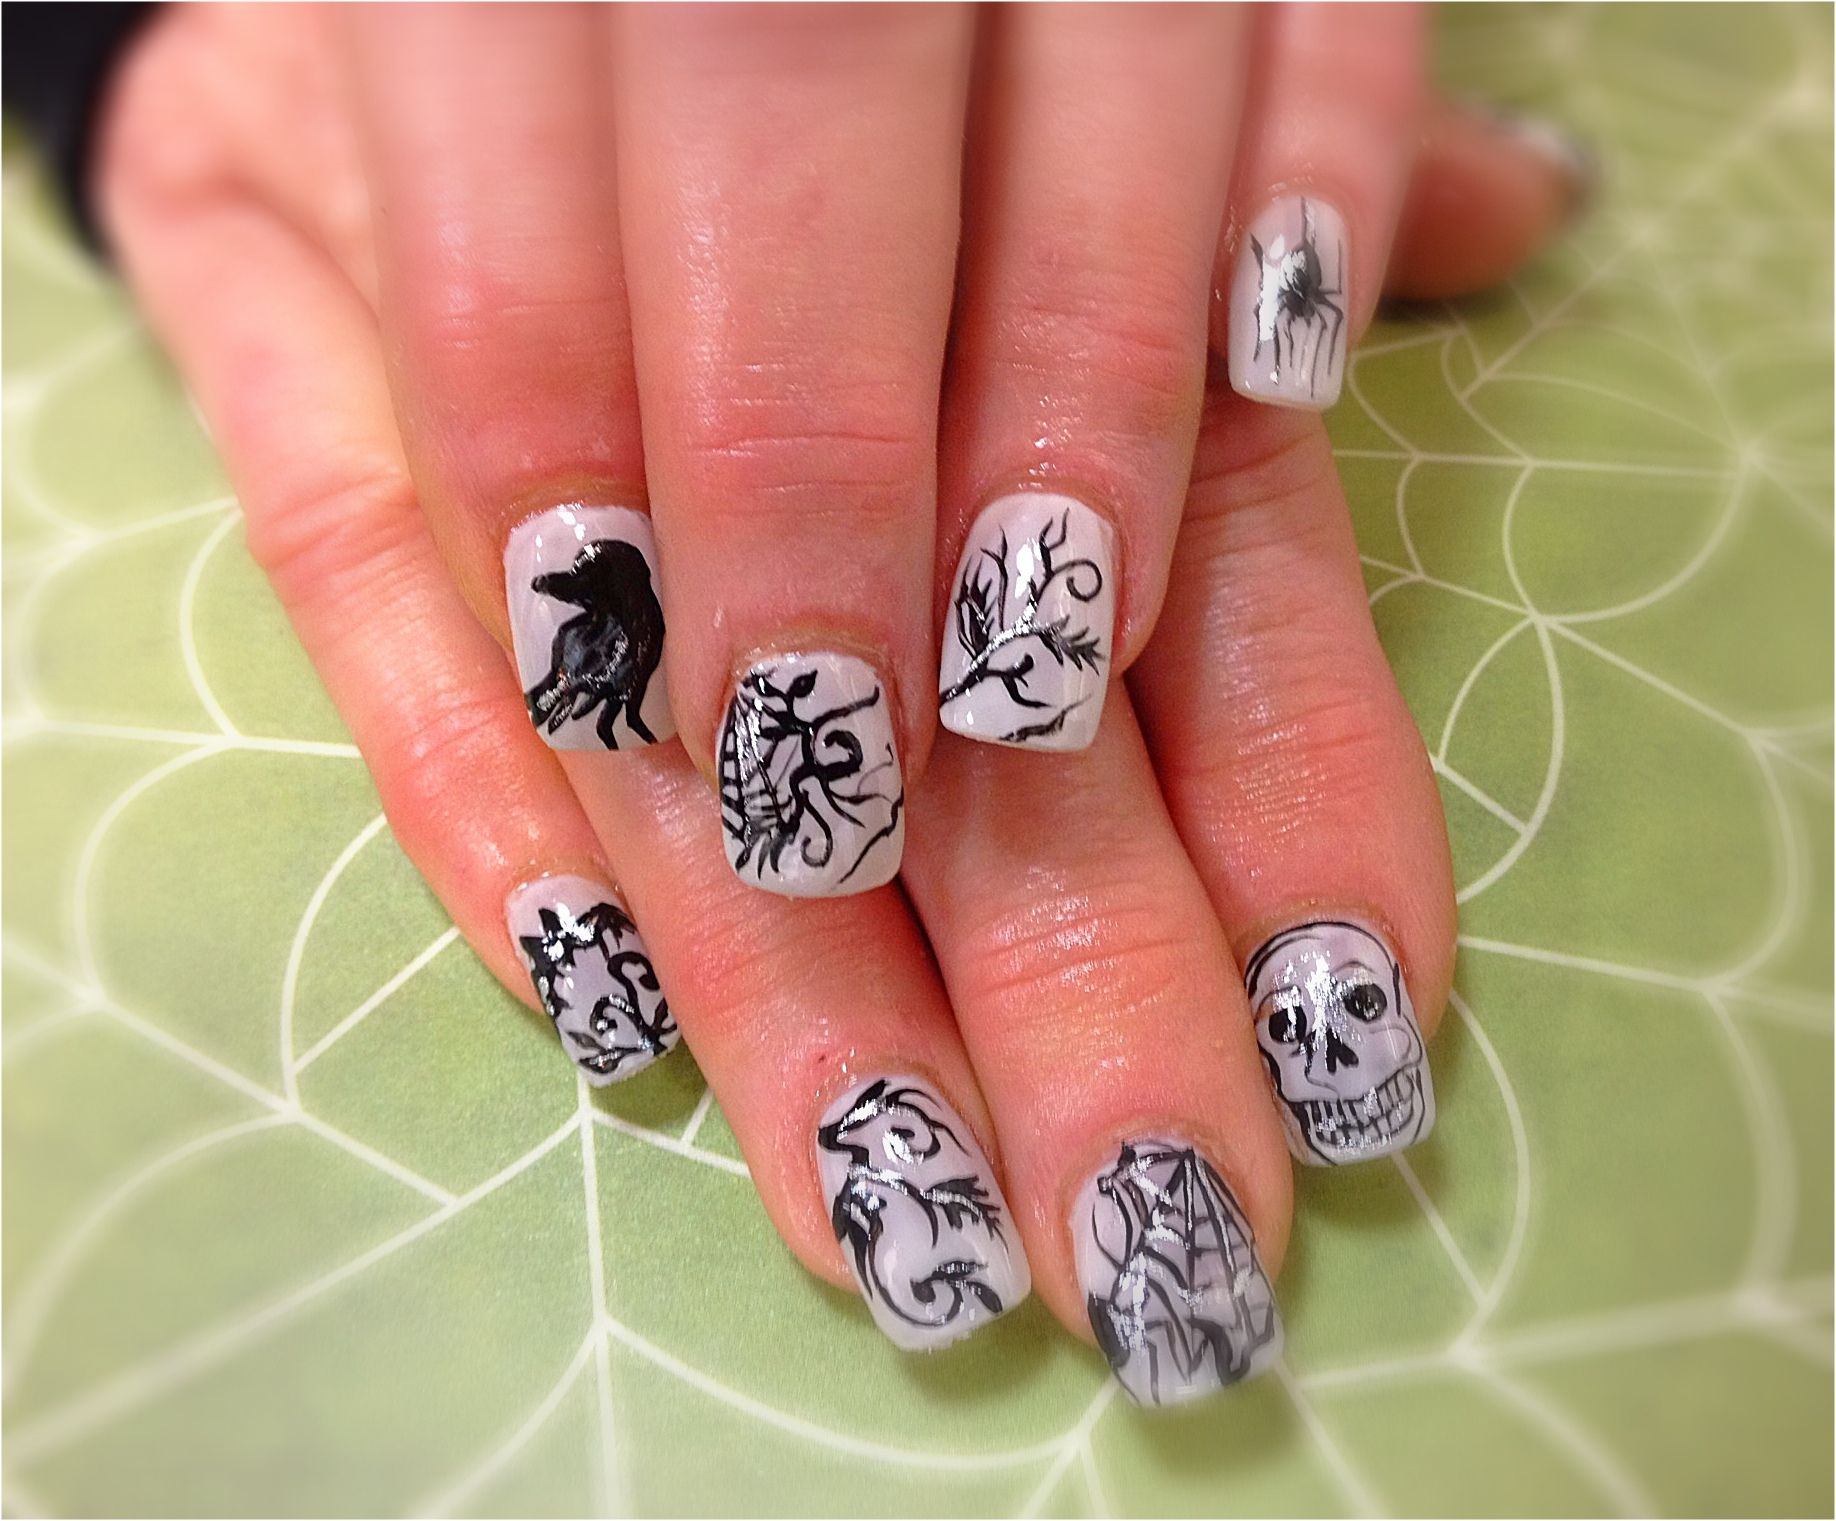 Halloween hand painted nail art | NAILS BY DINA/my work ...